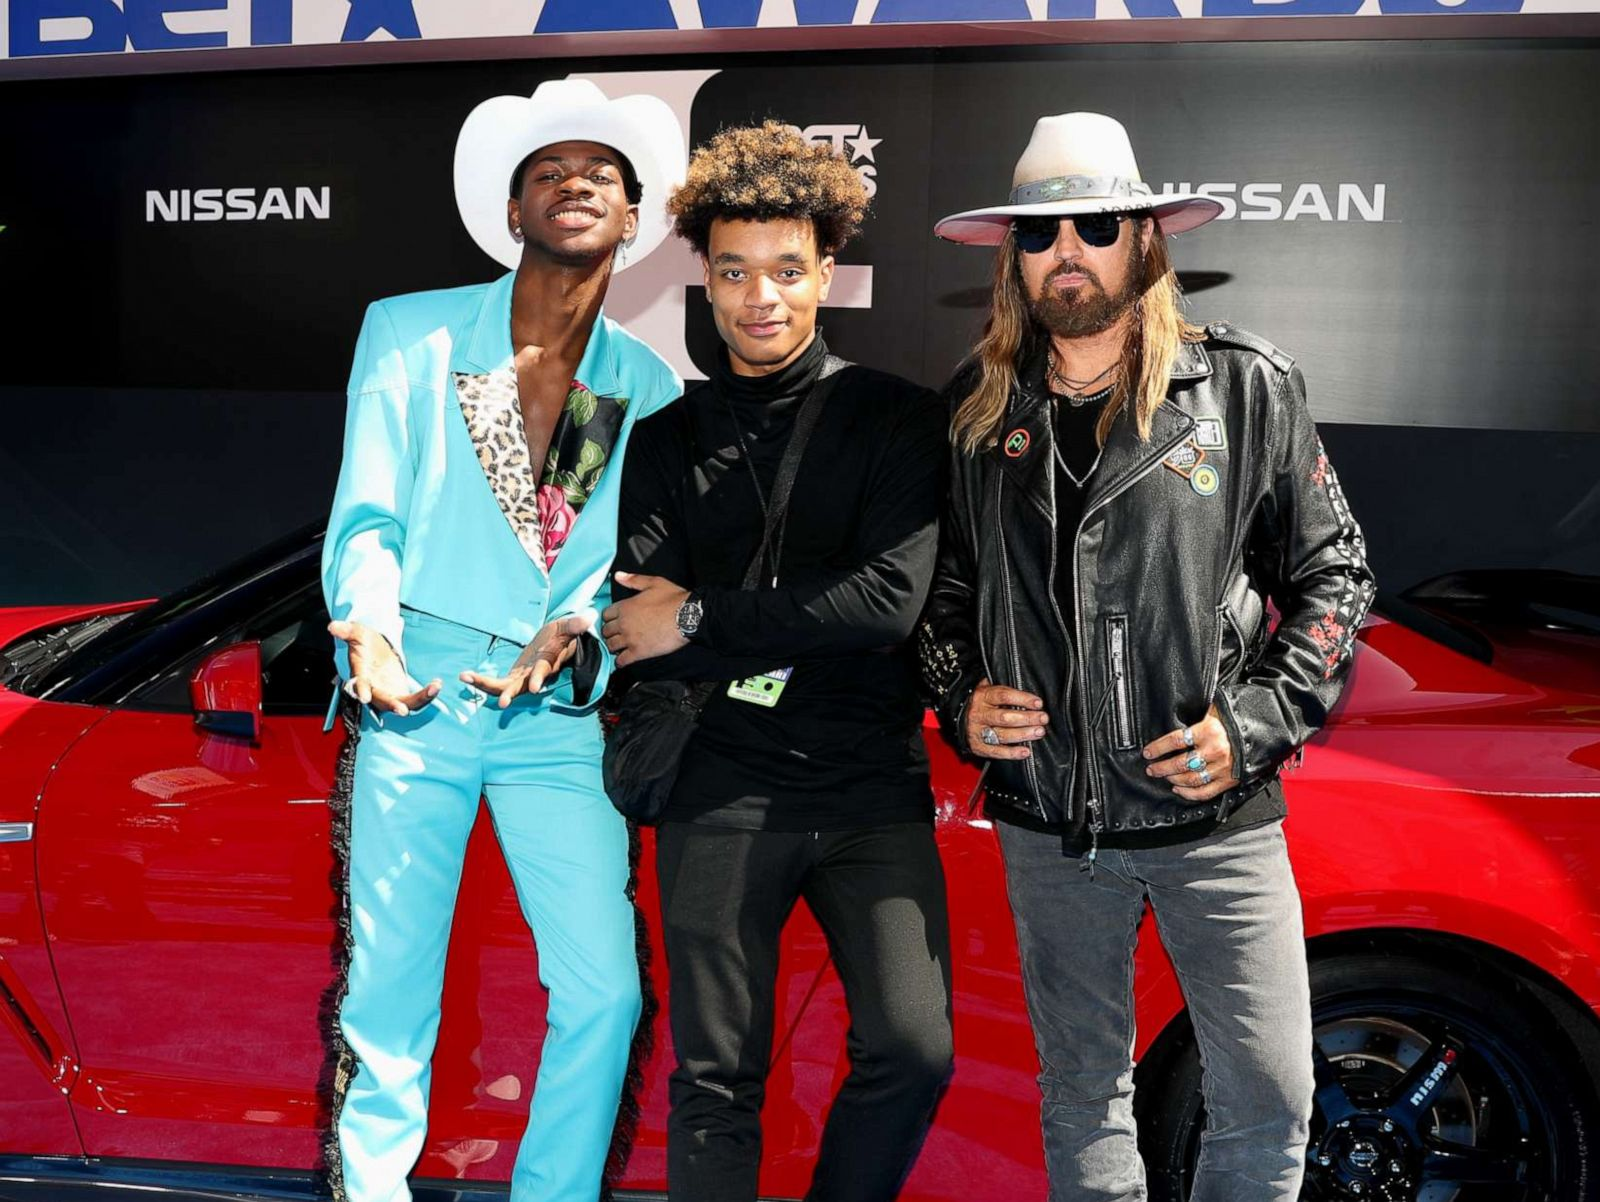 Lil Nas X bought 'Old Town Road' beat for $30: The story and the